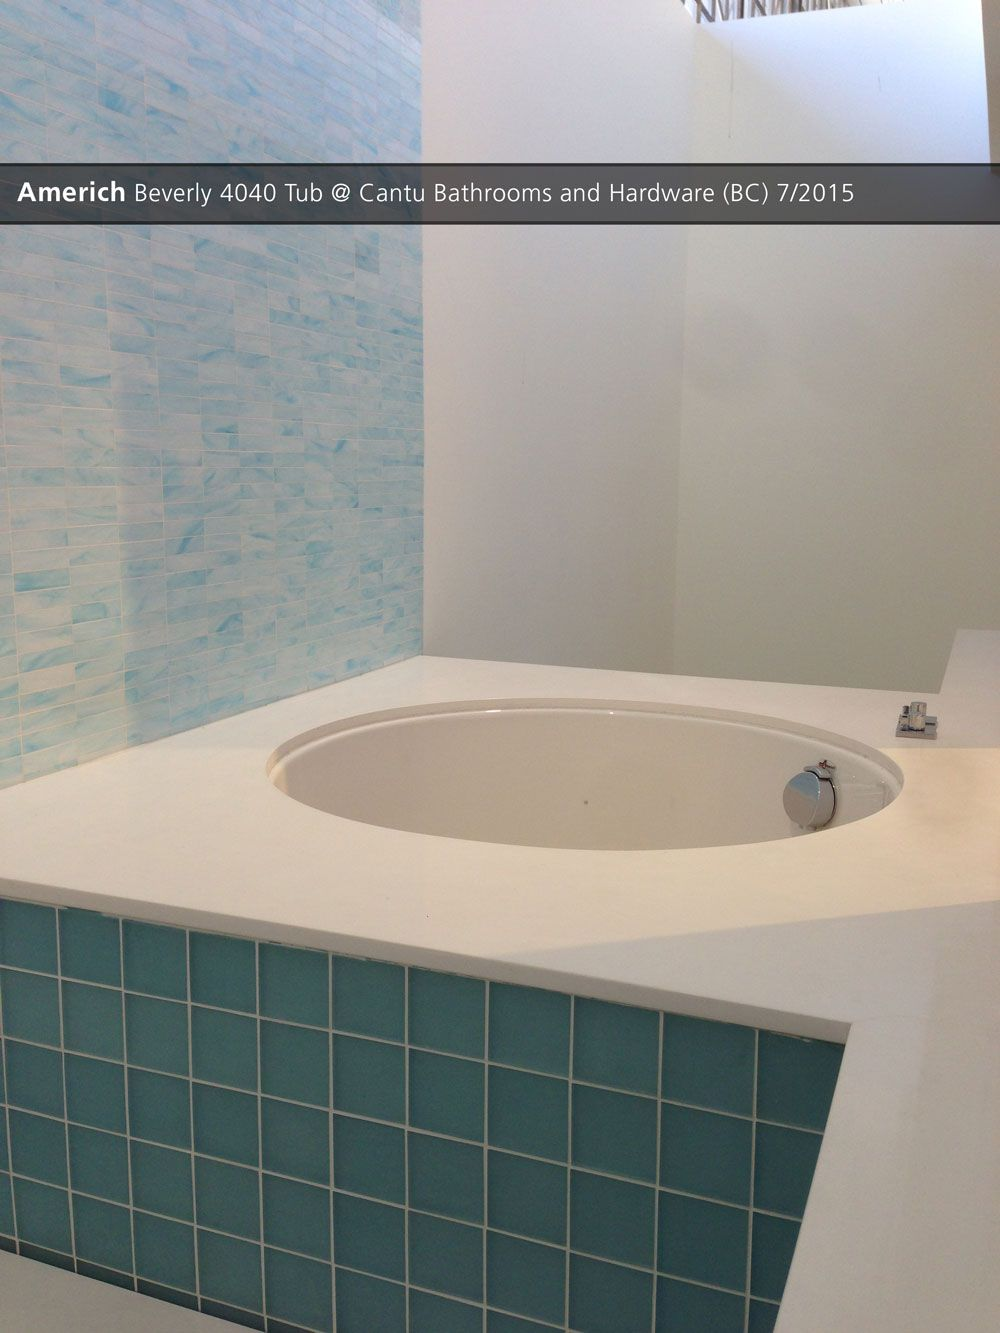 Americh Beverly 4040 Tub @ Cantu Bathrooms and Hardware (BC) - 7/20 ...